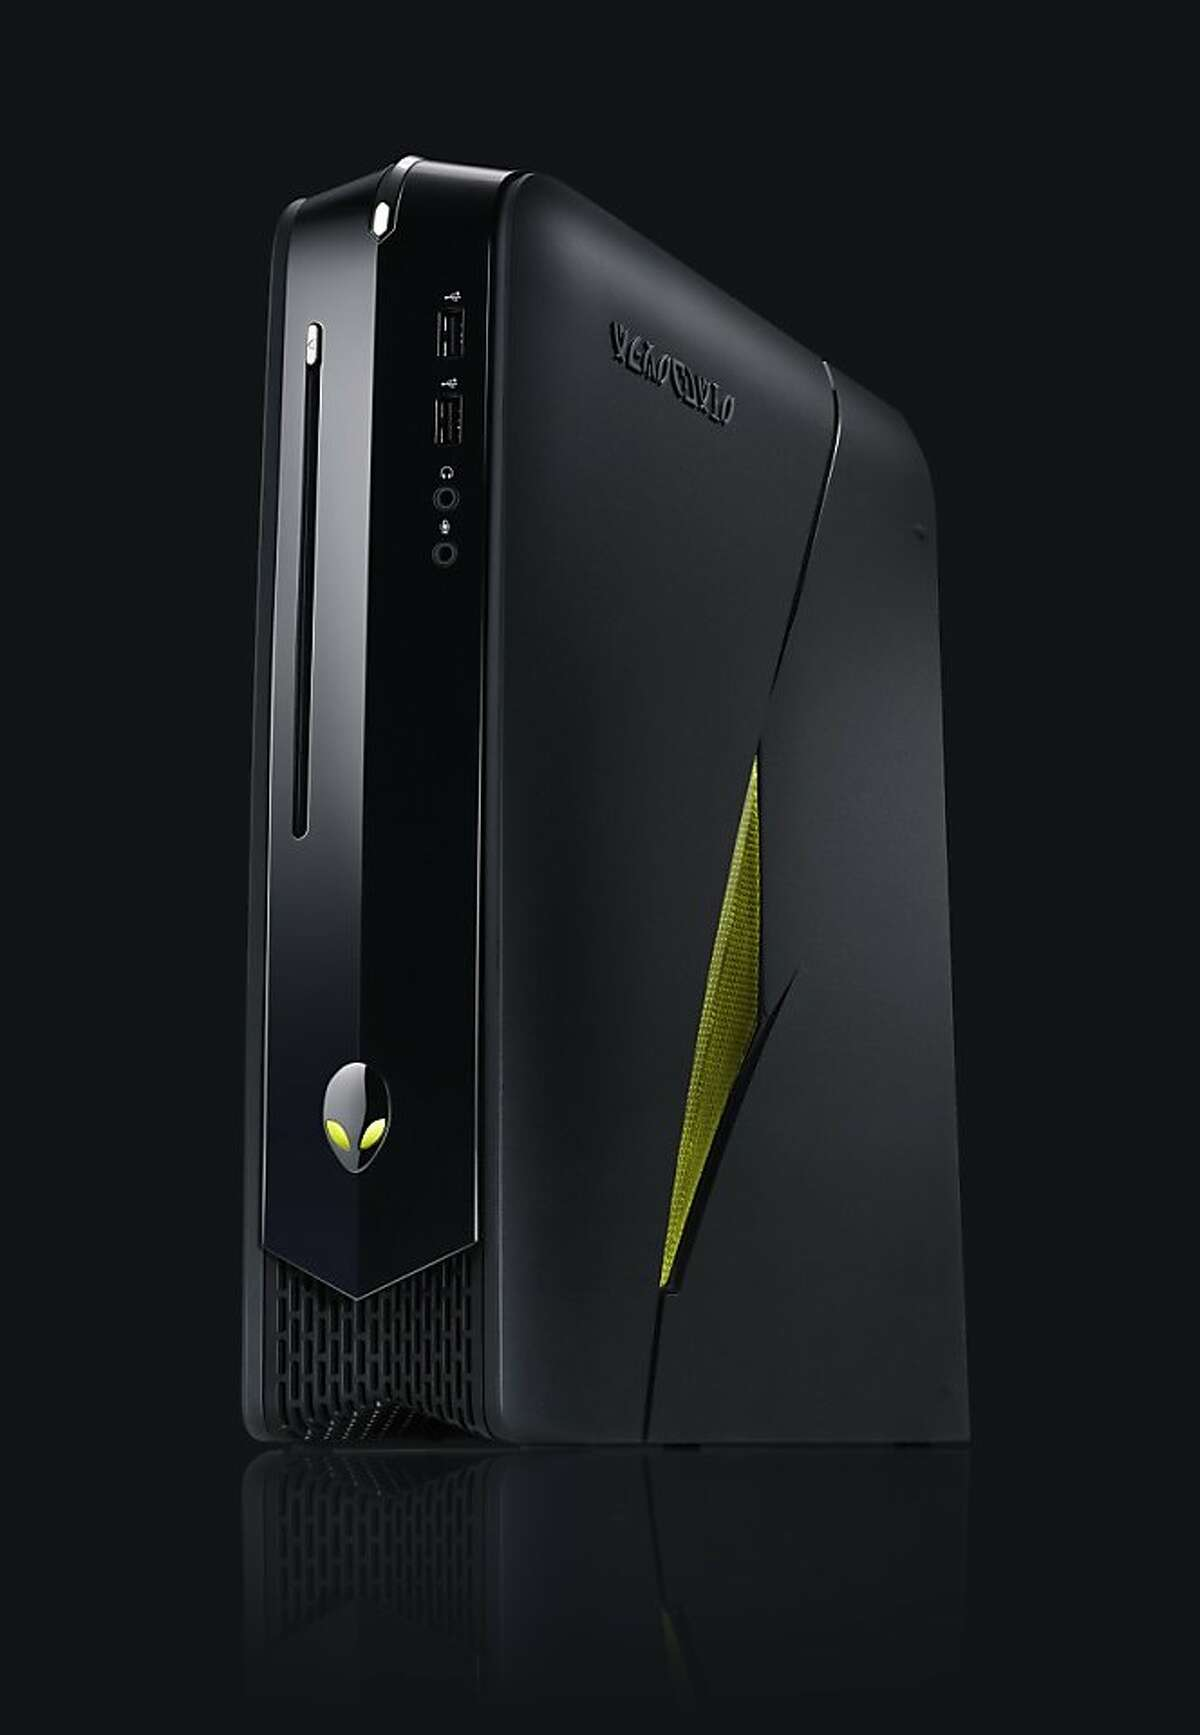 Alienware, a subsidiary of Dell, is among some of the companies making game-ready computers.